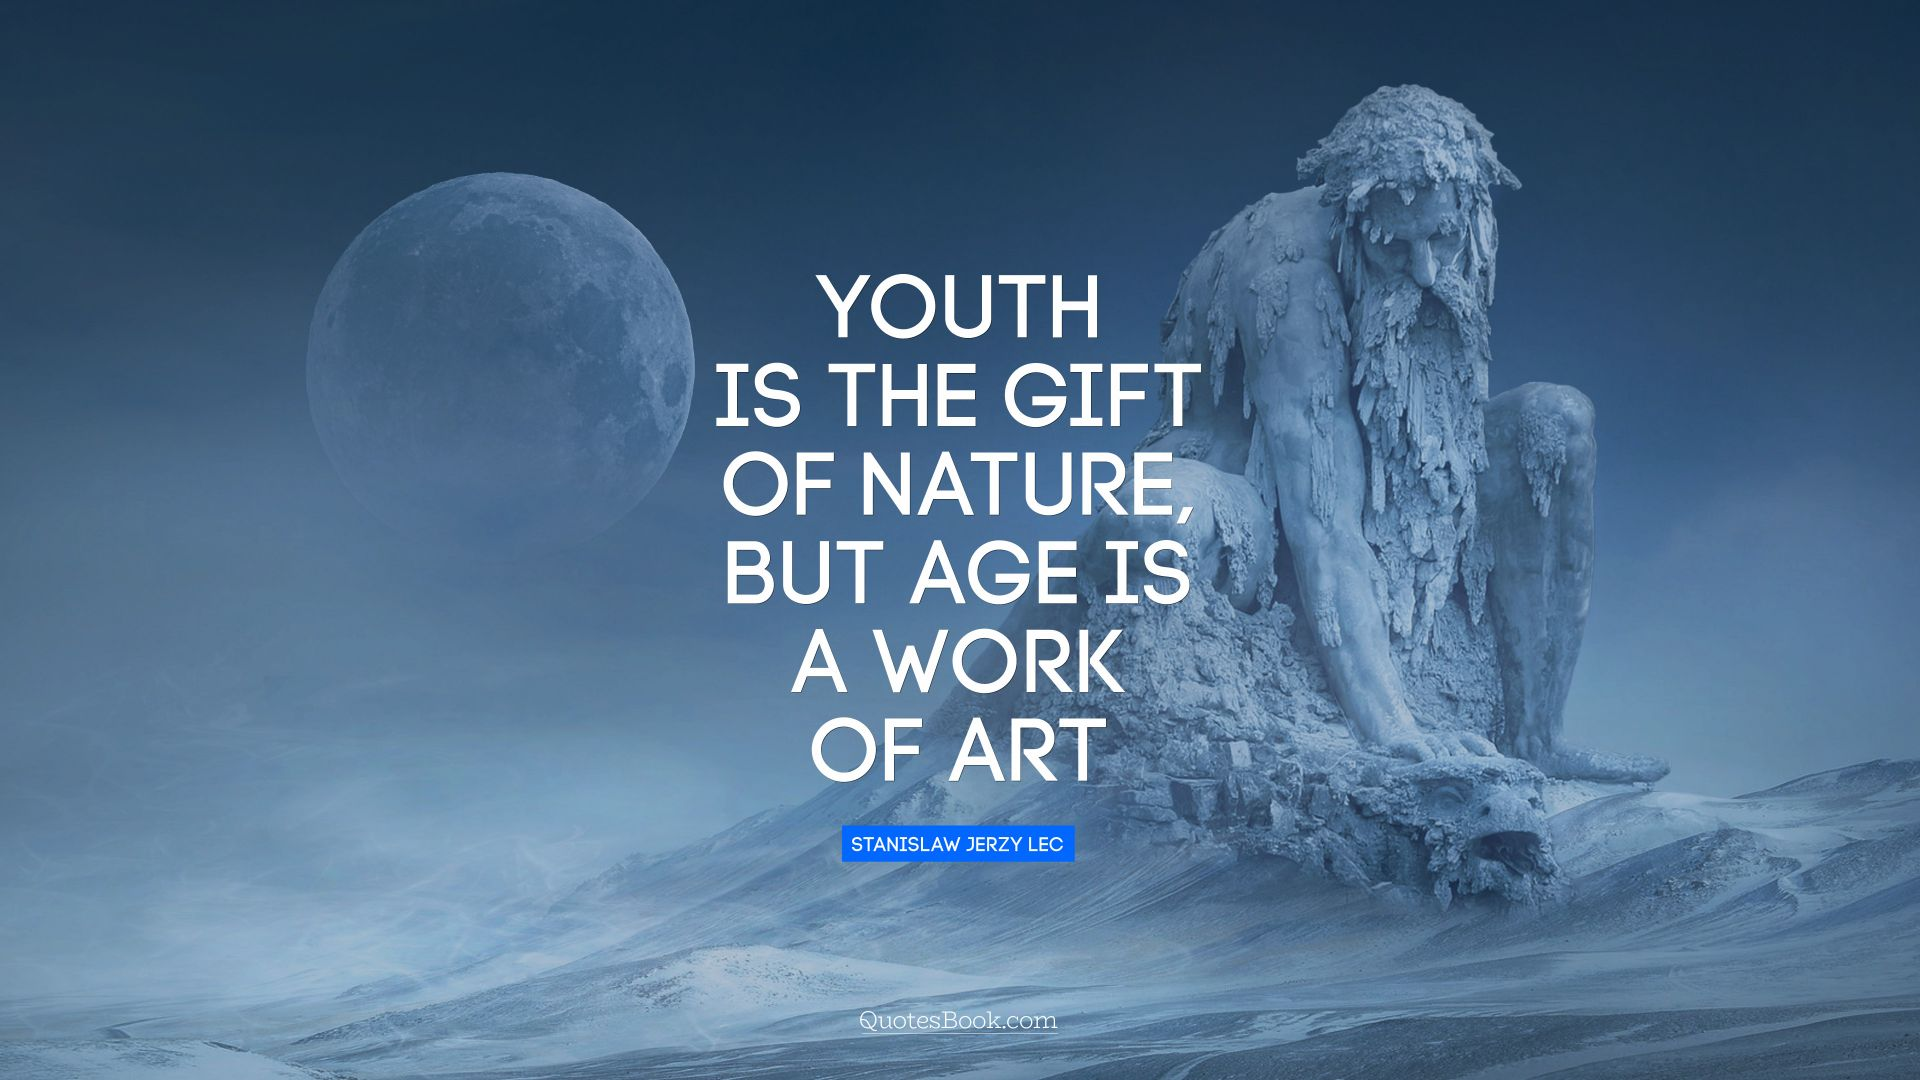 Youth is the gift of nature, but age is a work of art. - Quote by Stanislaw Jerzy Lec